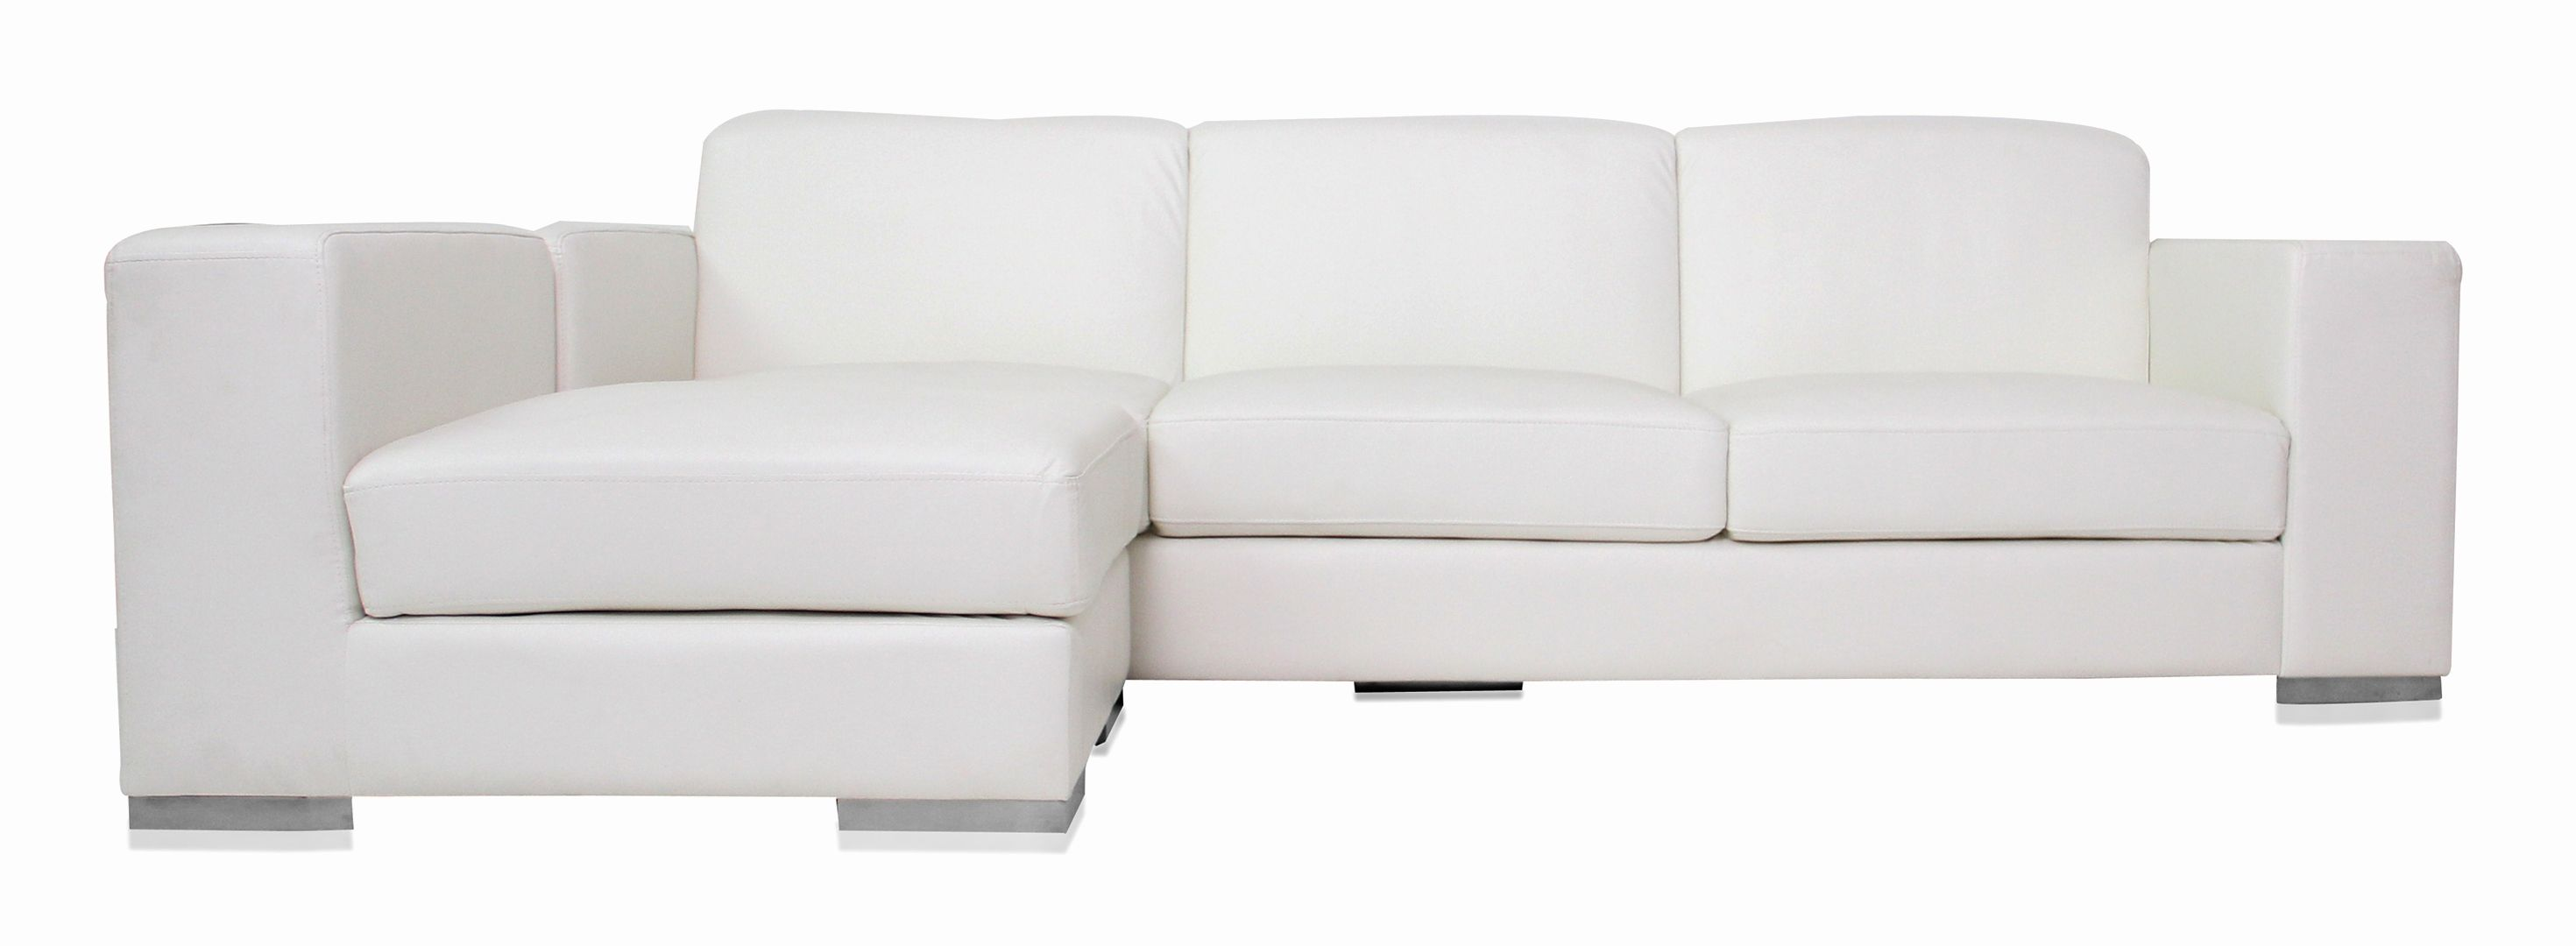 Pin By Great Sofas On Contemporary Sofa White Leather Sofas